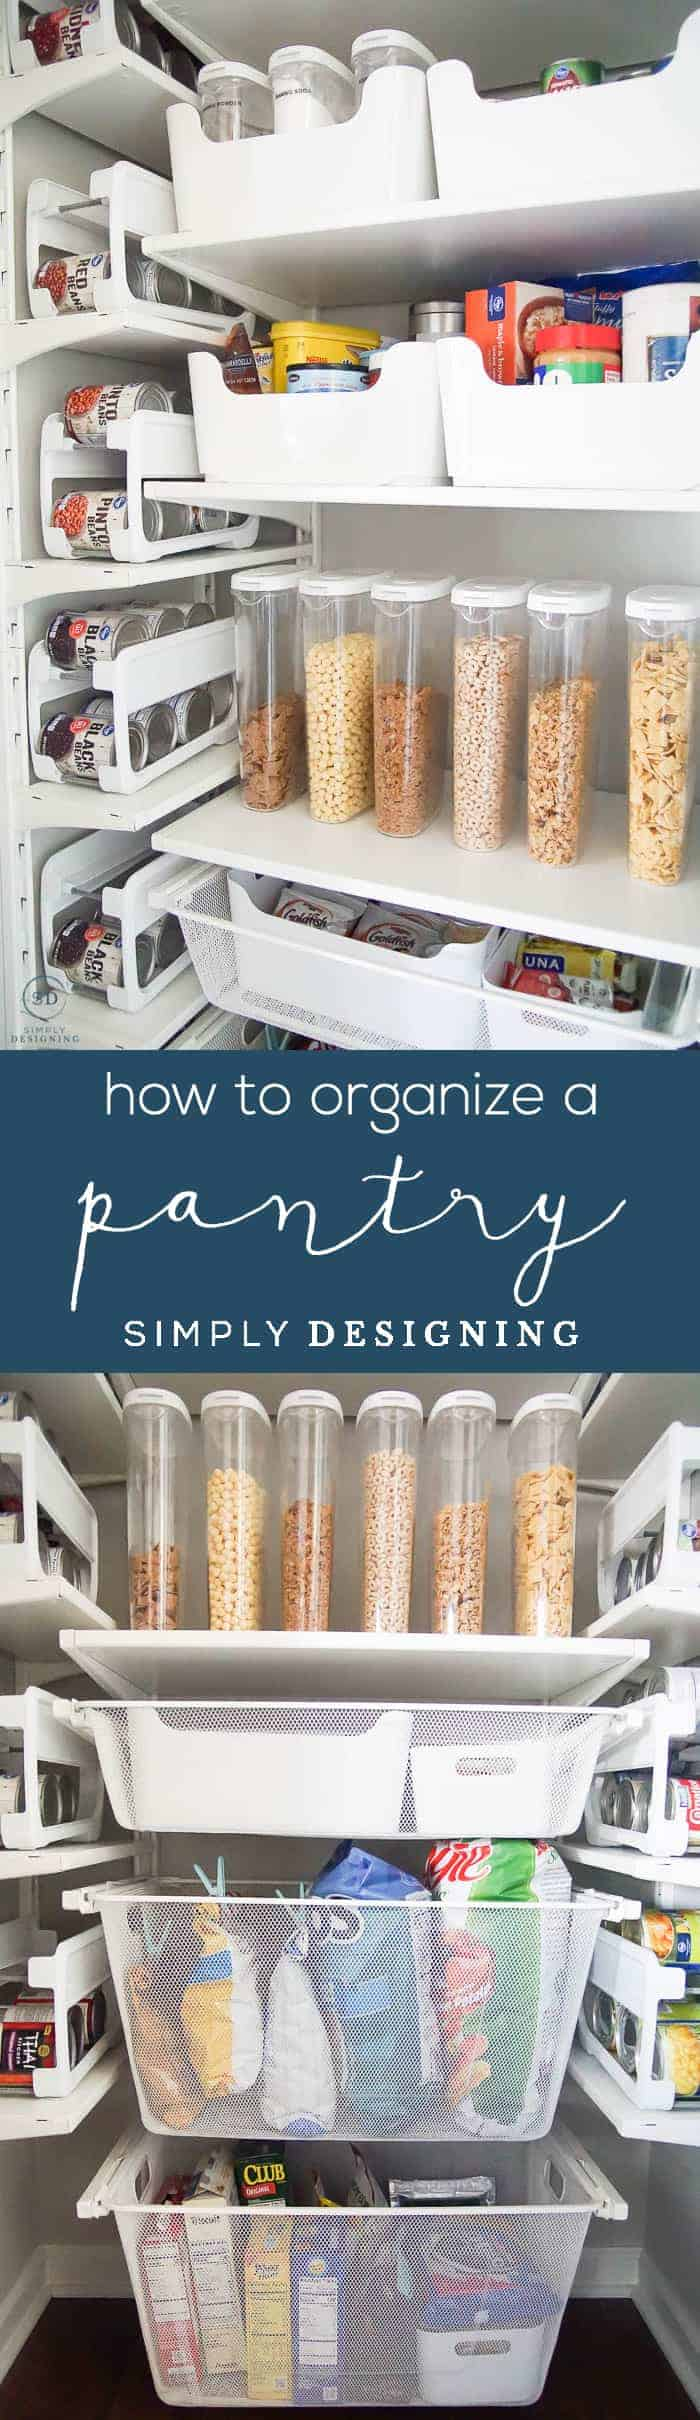 How to Organize a Small Pantry - DIY Pantry Organization Ideas - Organize Pantry